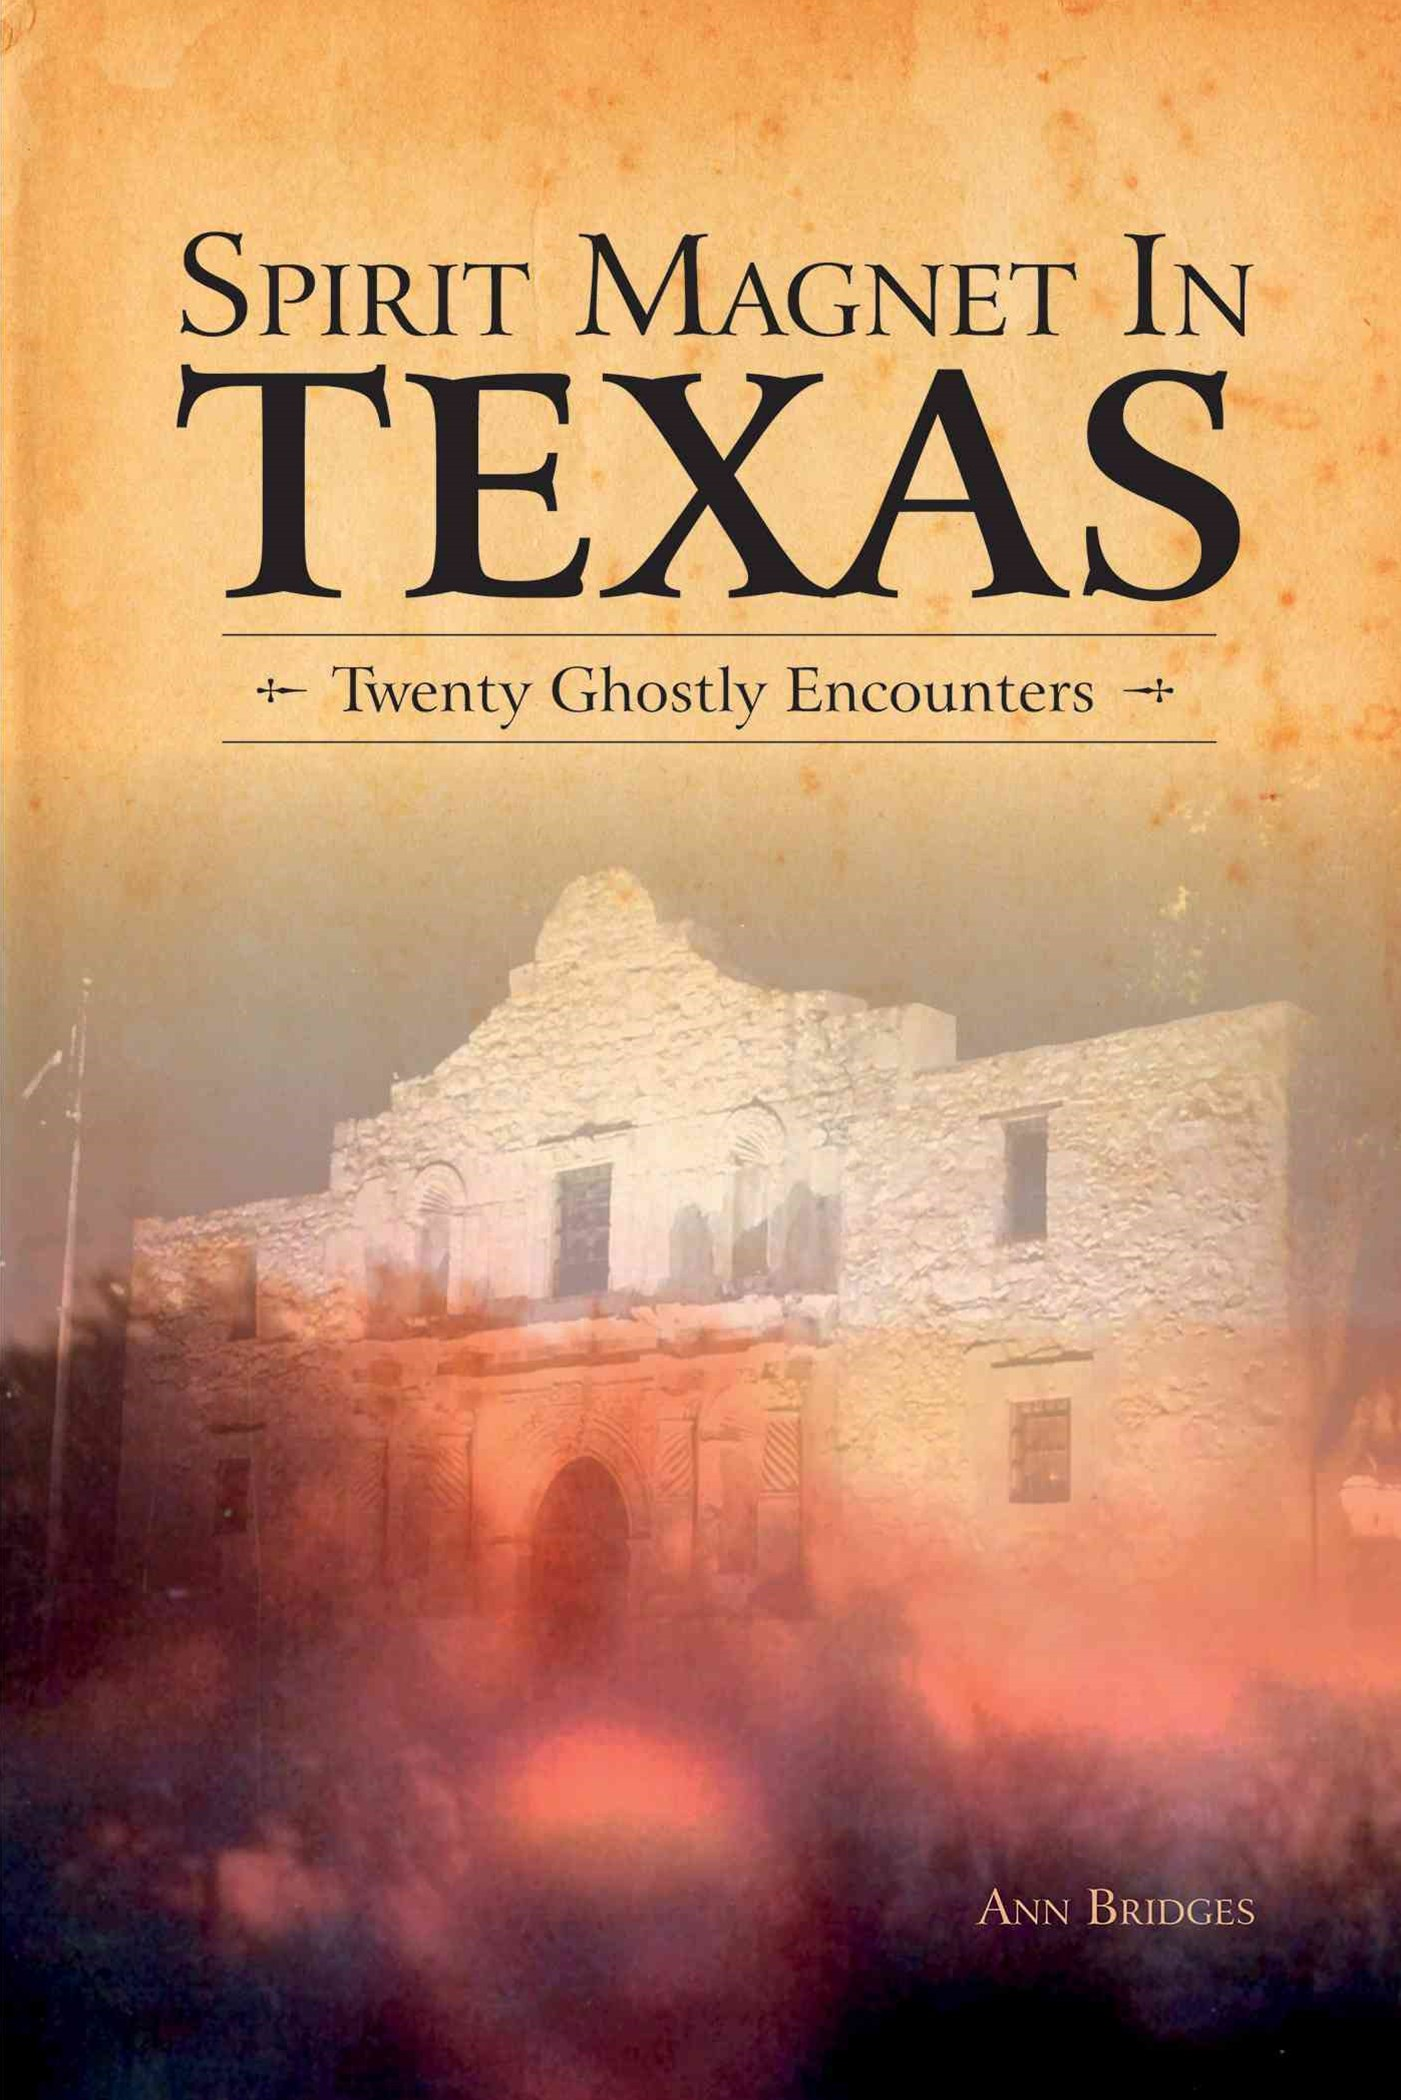 Spirit Magnet In Texas: 20 Ghostly Encounters